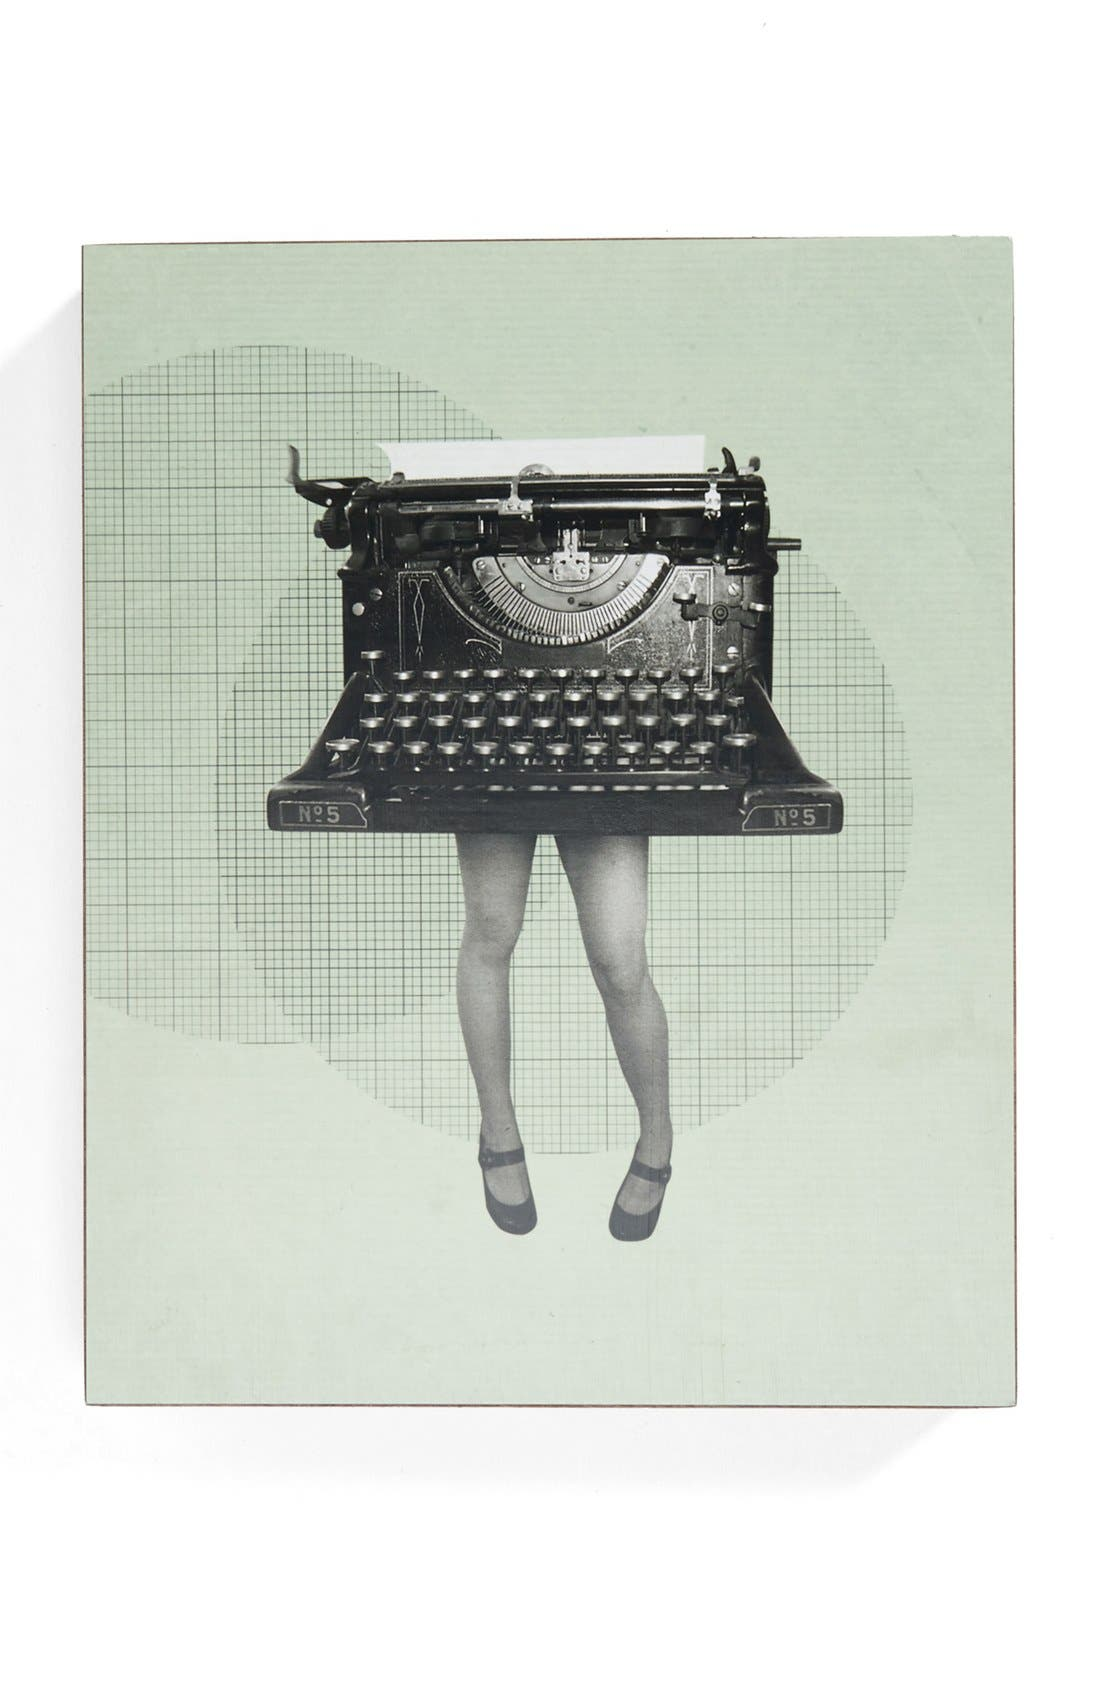 Alternate Image 1 Selected - Lucius Designs 'The Sexy Typewriter' Wall Art